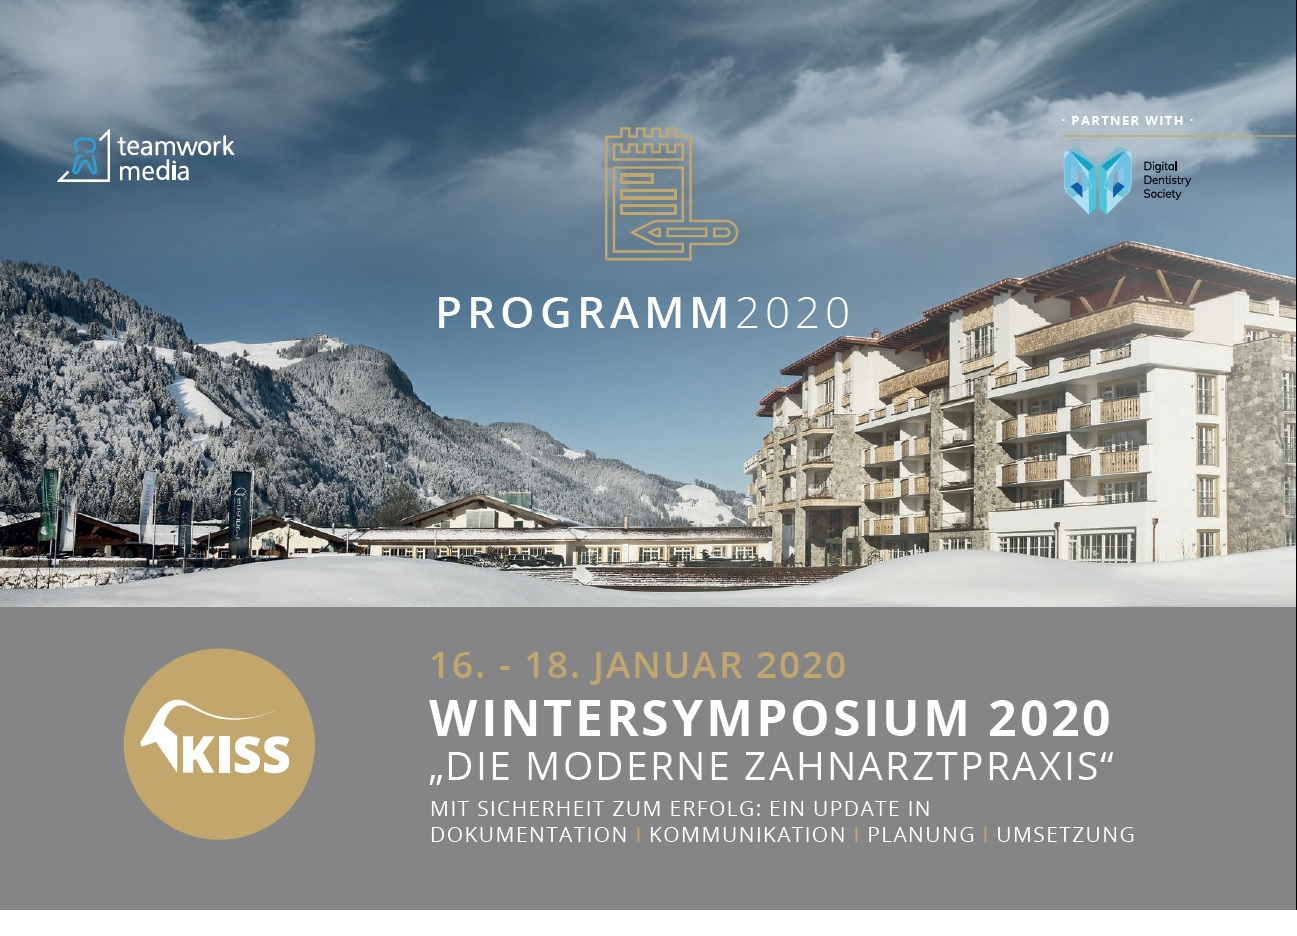 Kiss Winter Symposium with DDS